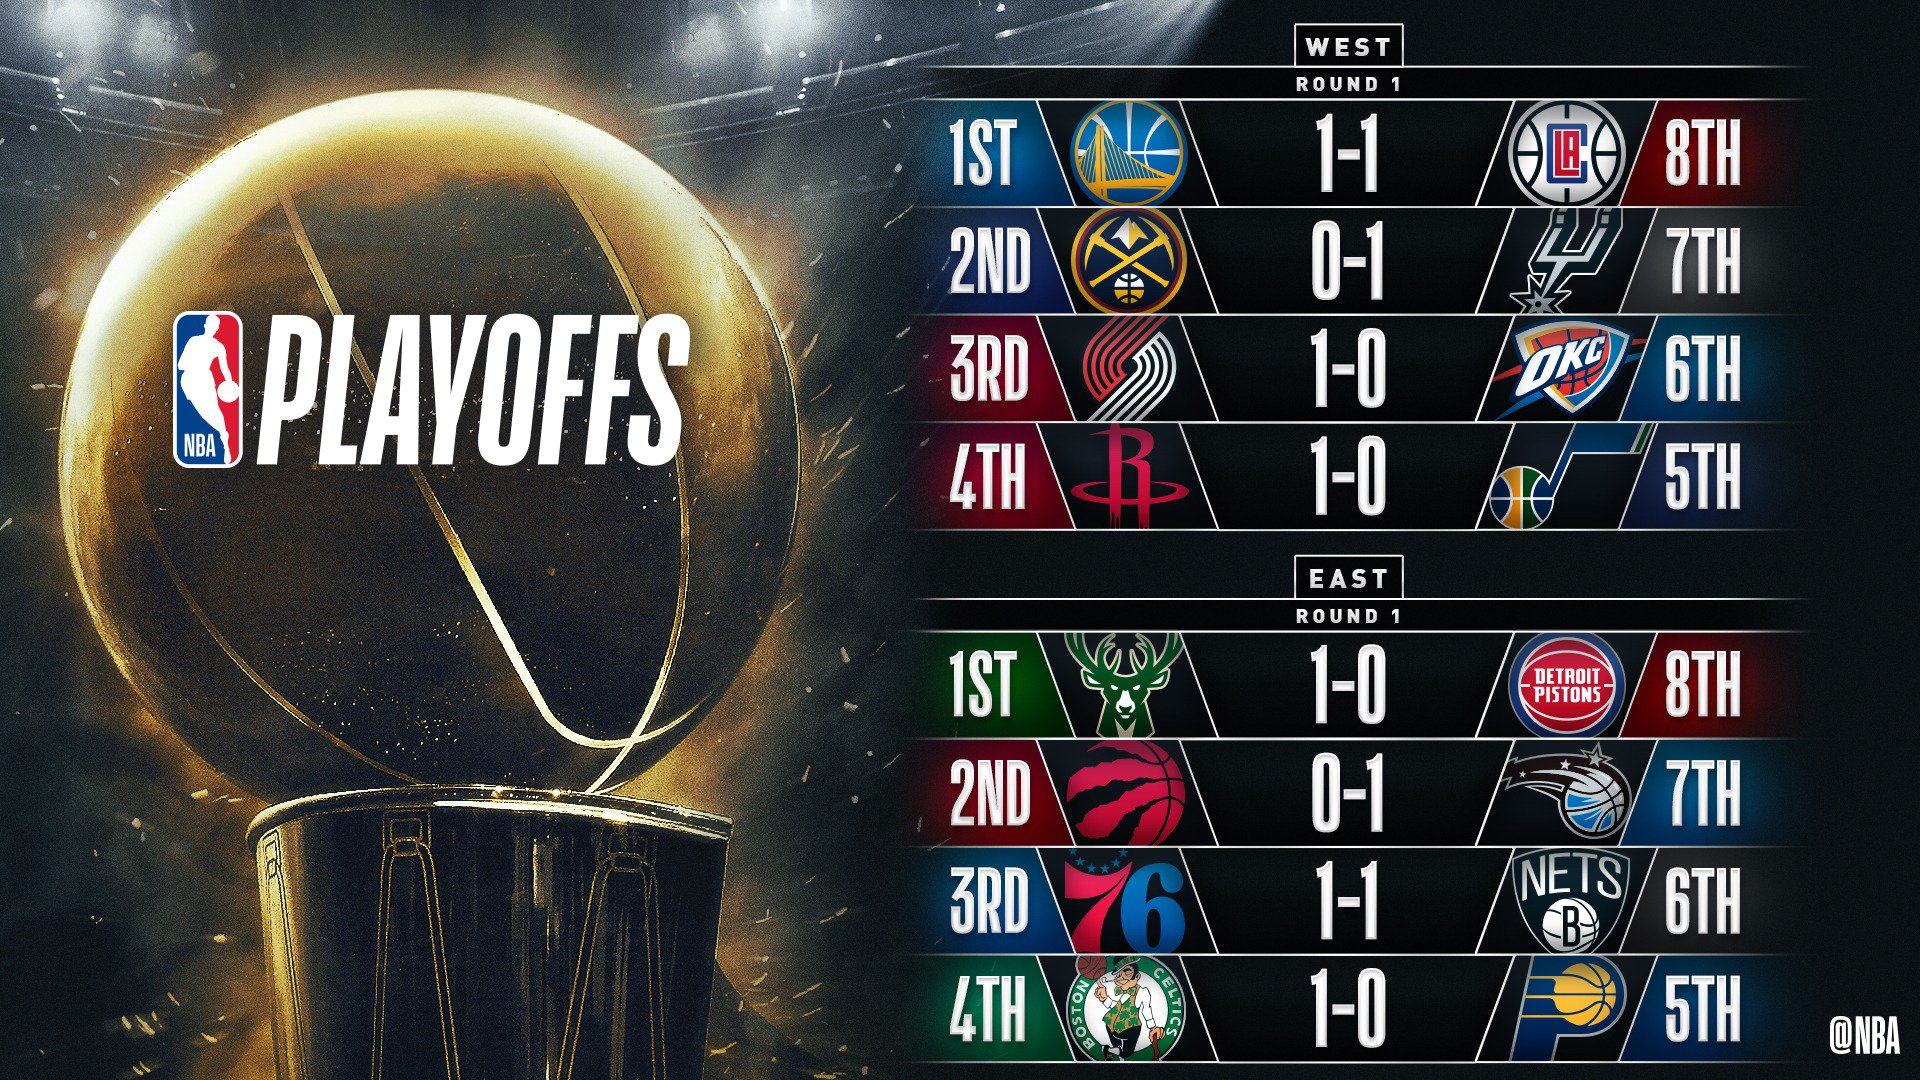 The @sixers & @LAClippers even their series' 1-1 with WINS on Monday! #NBAPlayoffs https://t.co/27JtHNIR6h